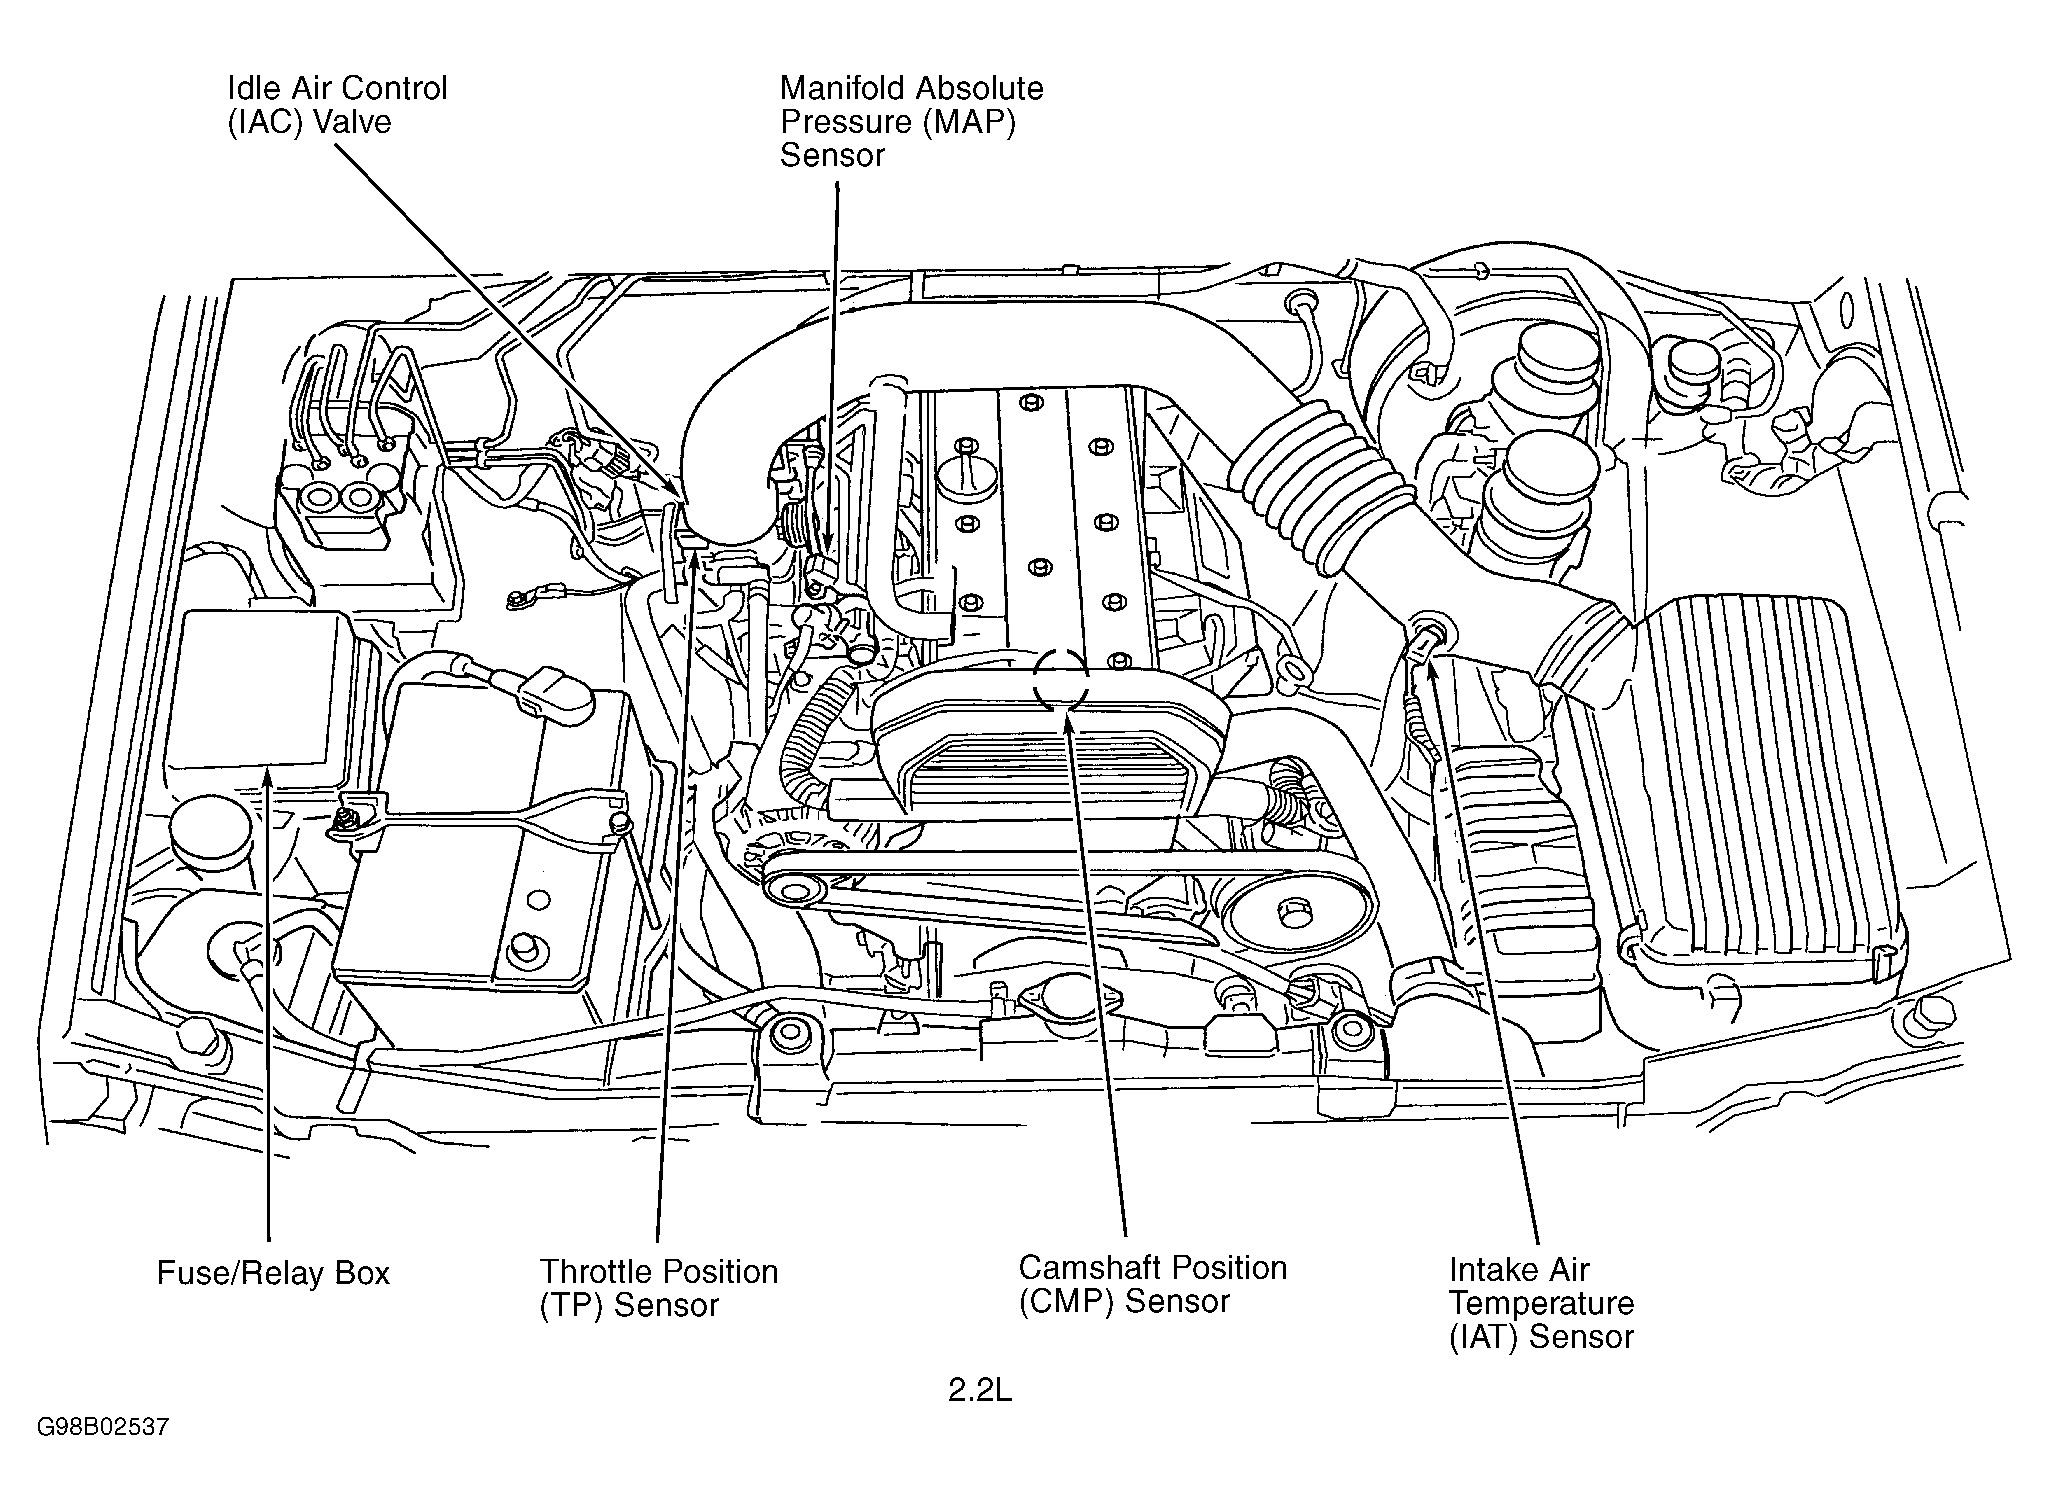 07 Chrysler Pacifica 4.0 Oxygen Sensor Heater Wiring Diagram